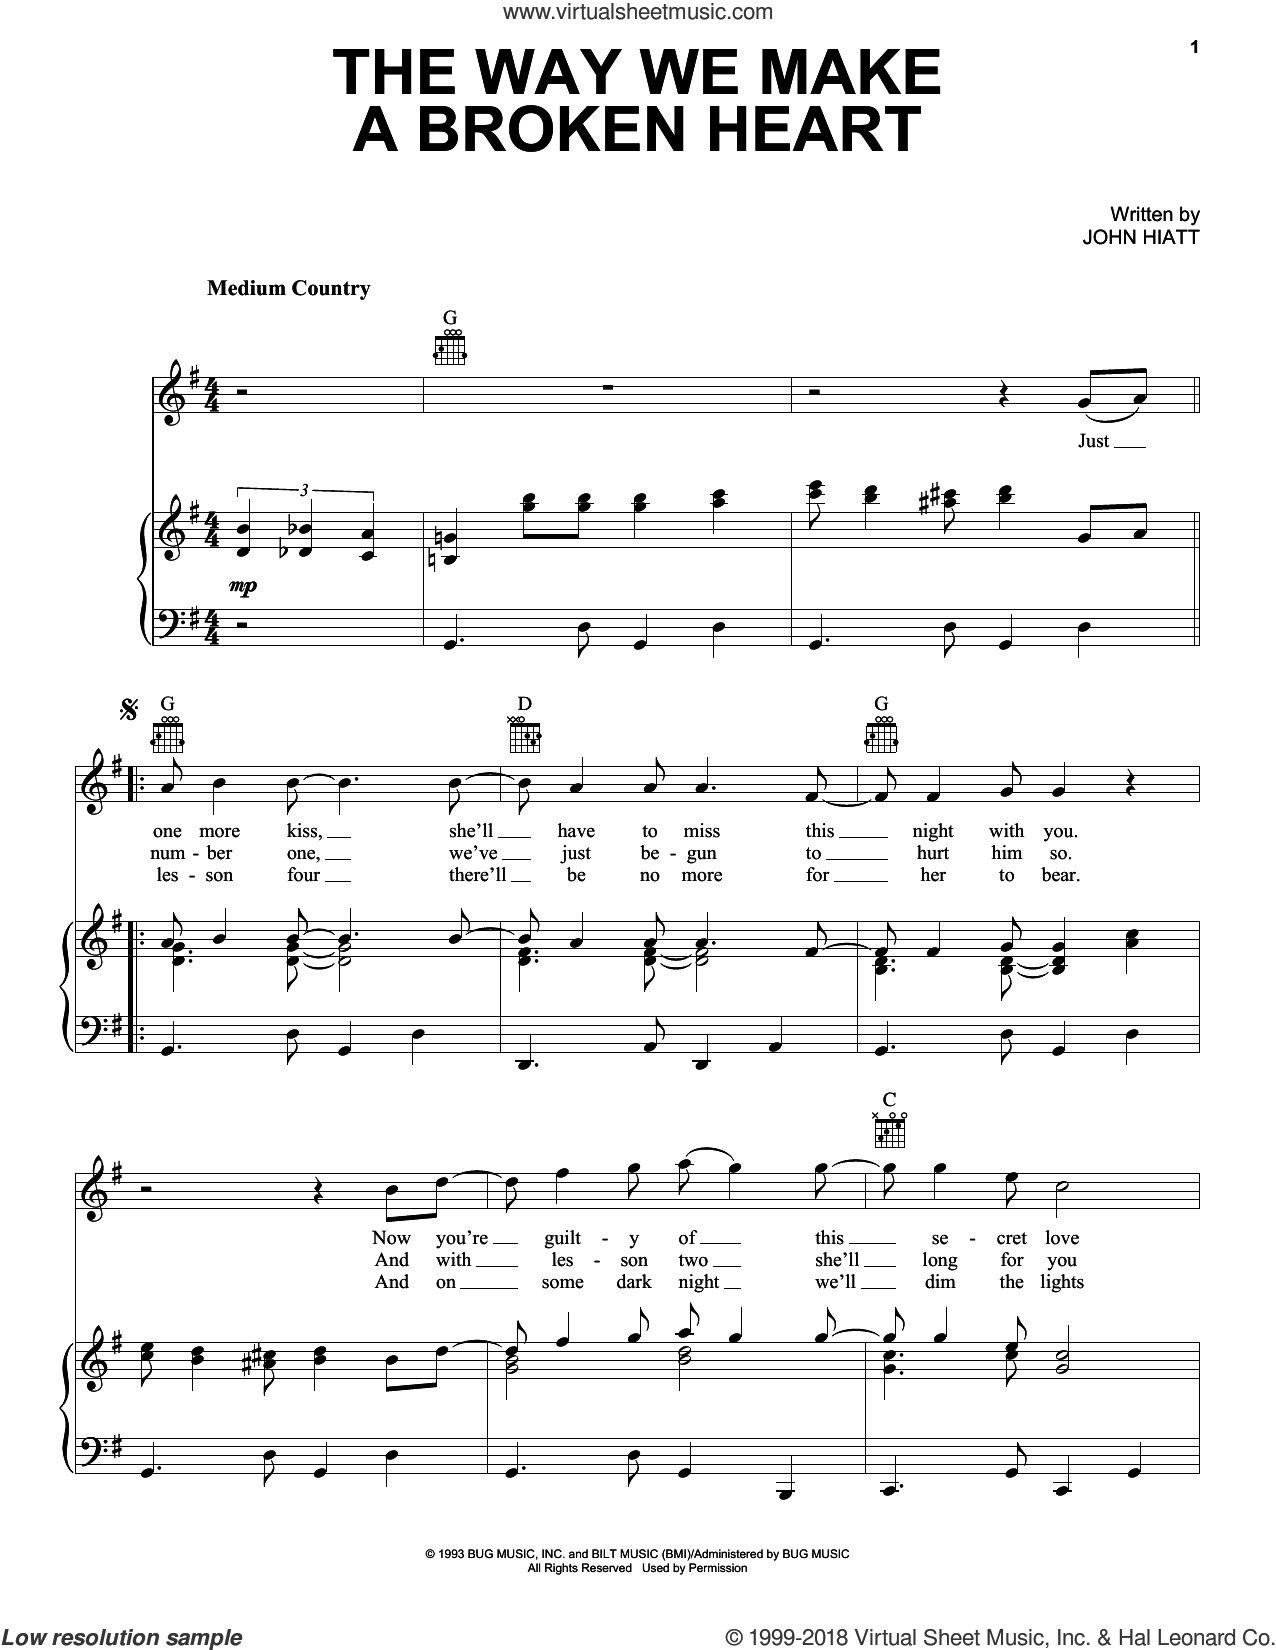 The Way We Make A Broken Heart sheet music for voice, piano or guitar by John Hiatt and Rosanne Cash, intermediate skill level